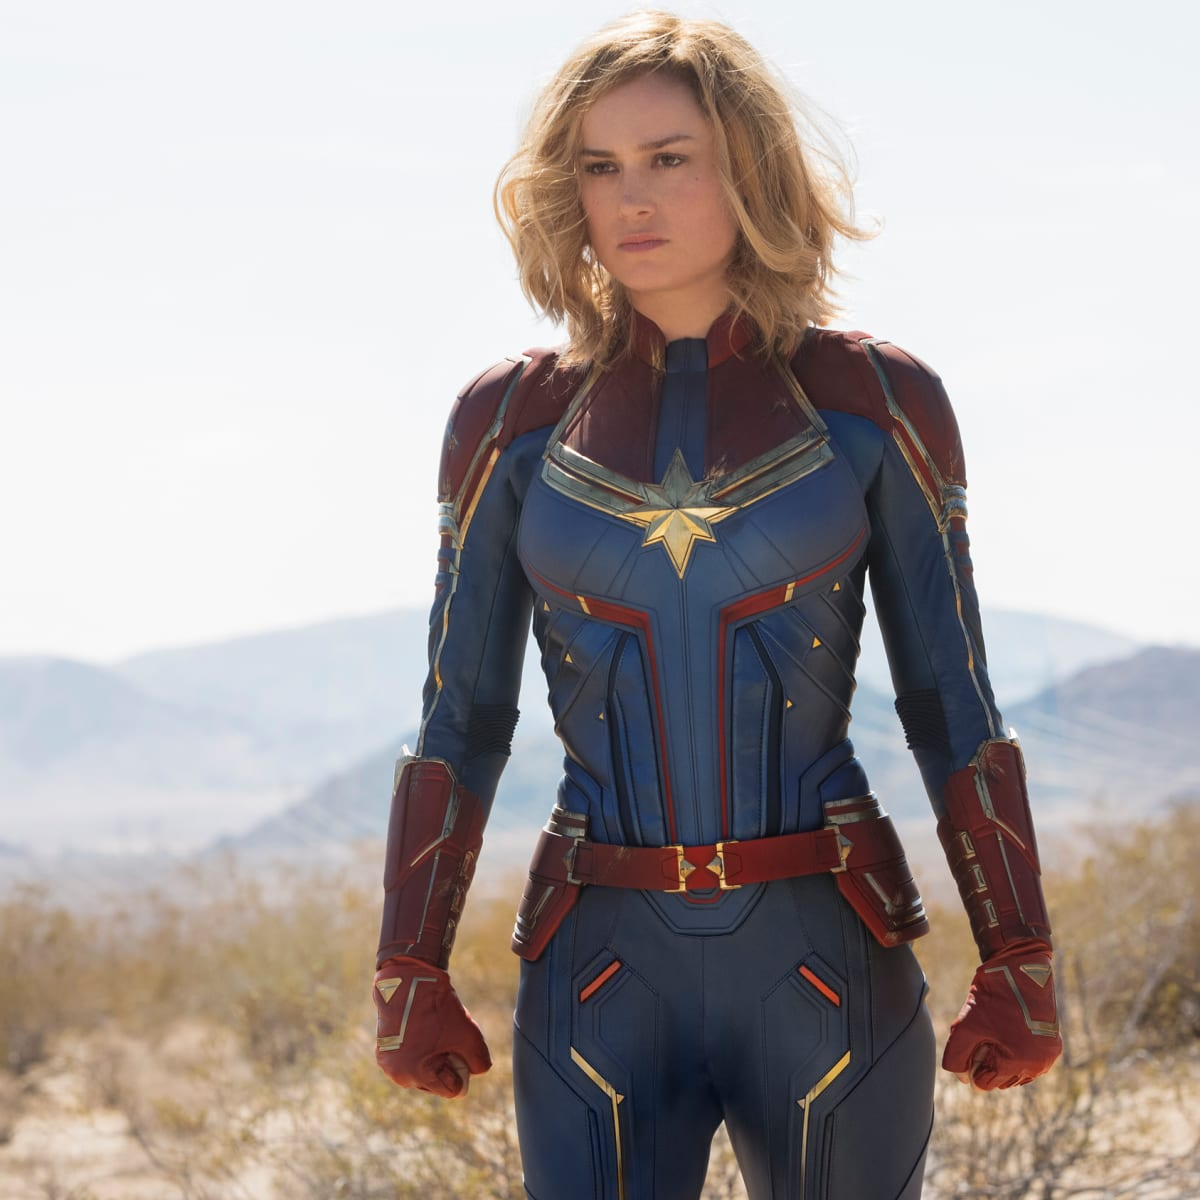 The Complete Breakdown Of Brie Larson S Costumes In Captain Marvel Fashionista Theo wargo/getty images for nbc. captain marvel